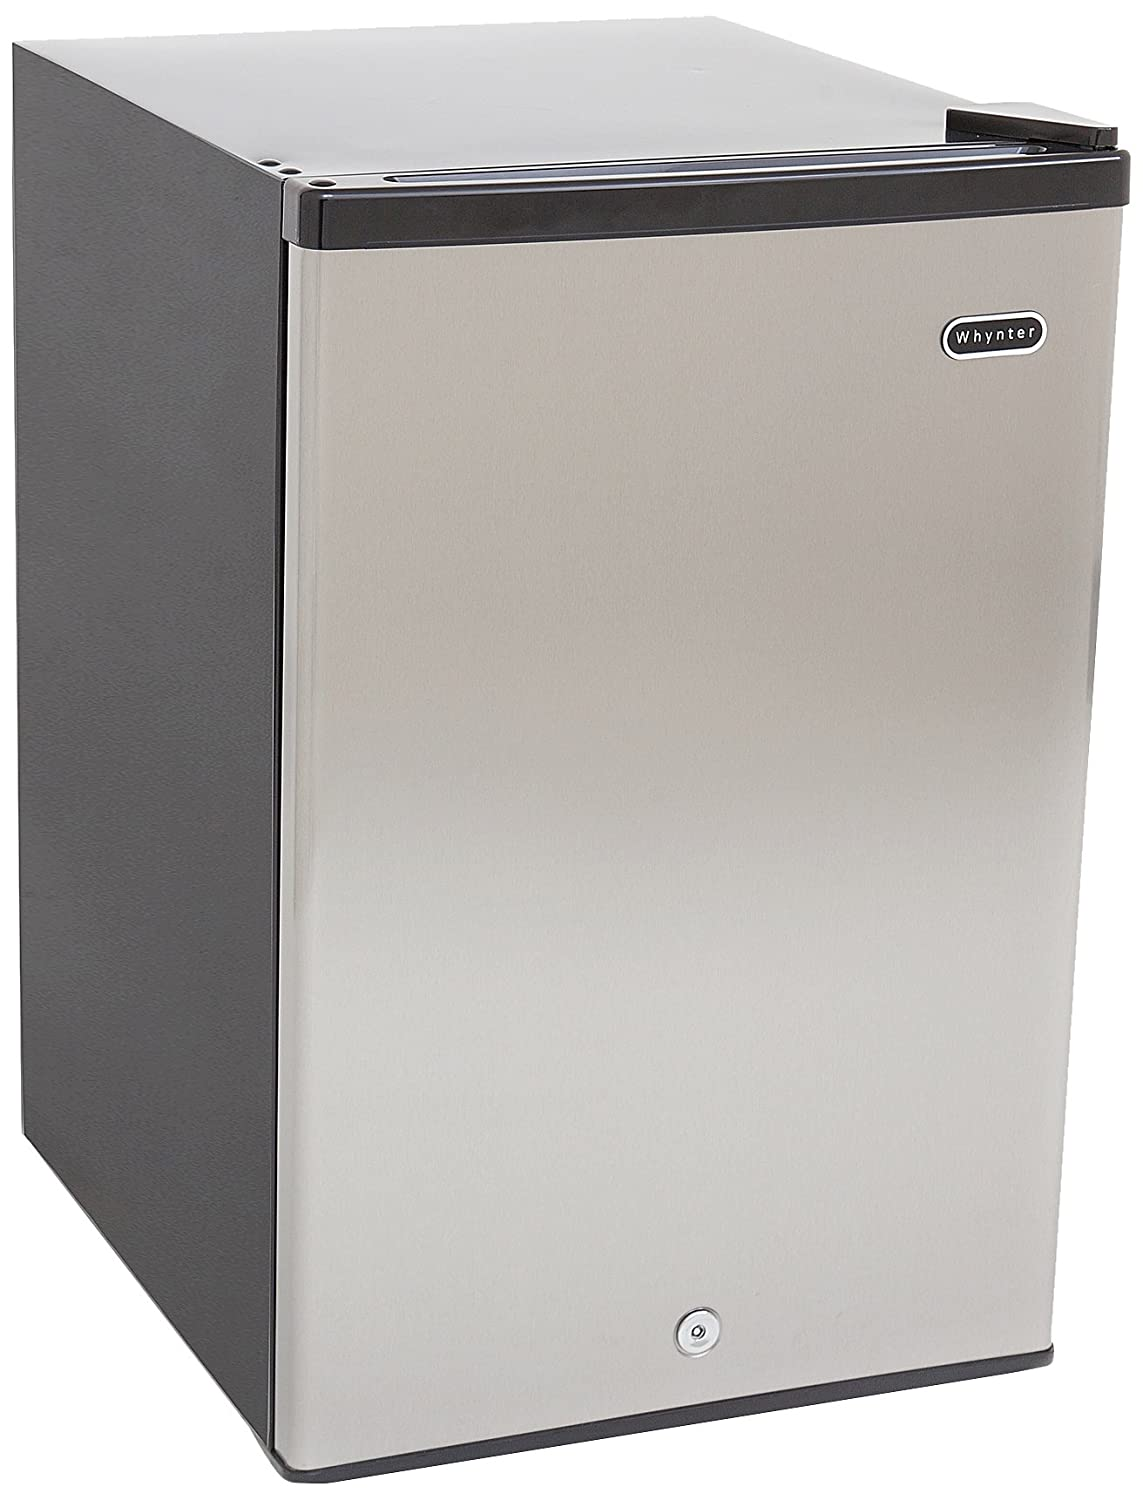 Whynter CUF-210SS Energy Star Upright Freezer, 2.1 Cubic Feet